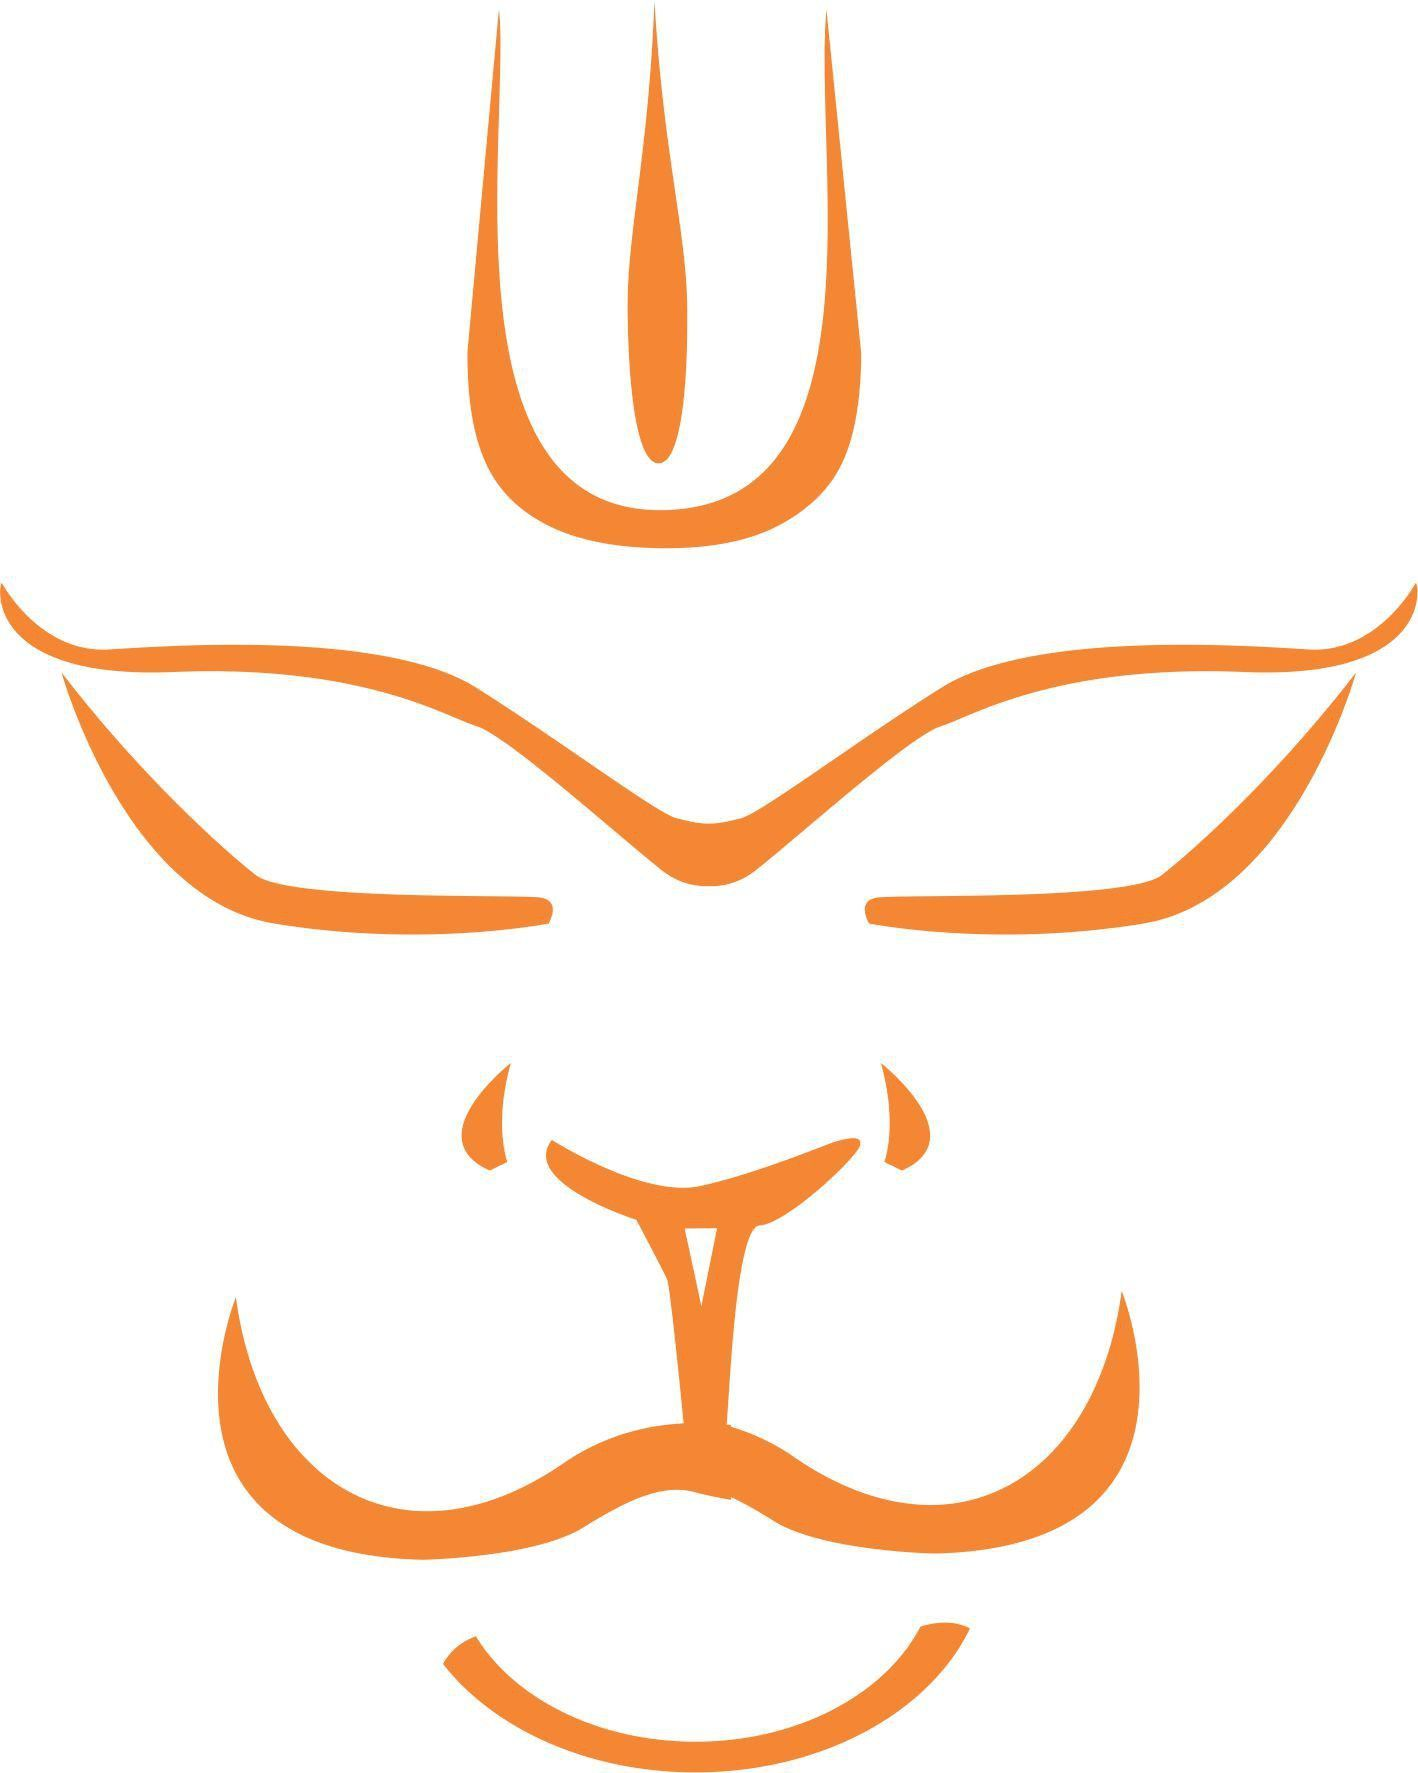 Www indiashopps com automotive idesign hanuman face windows car sticker price in india 32431286 1